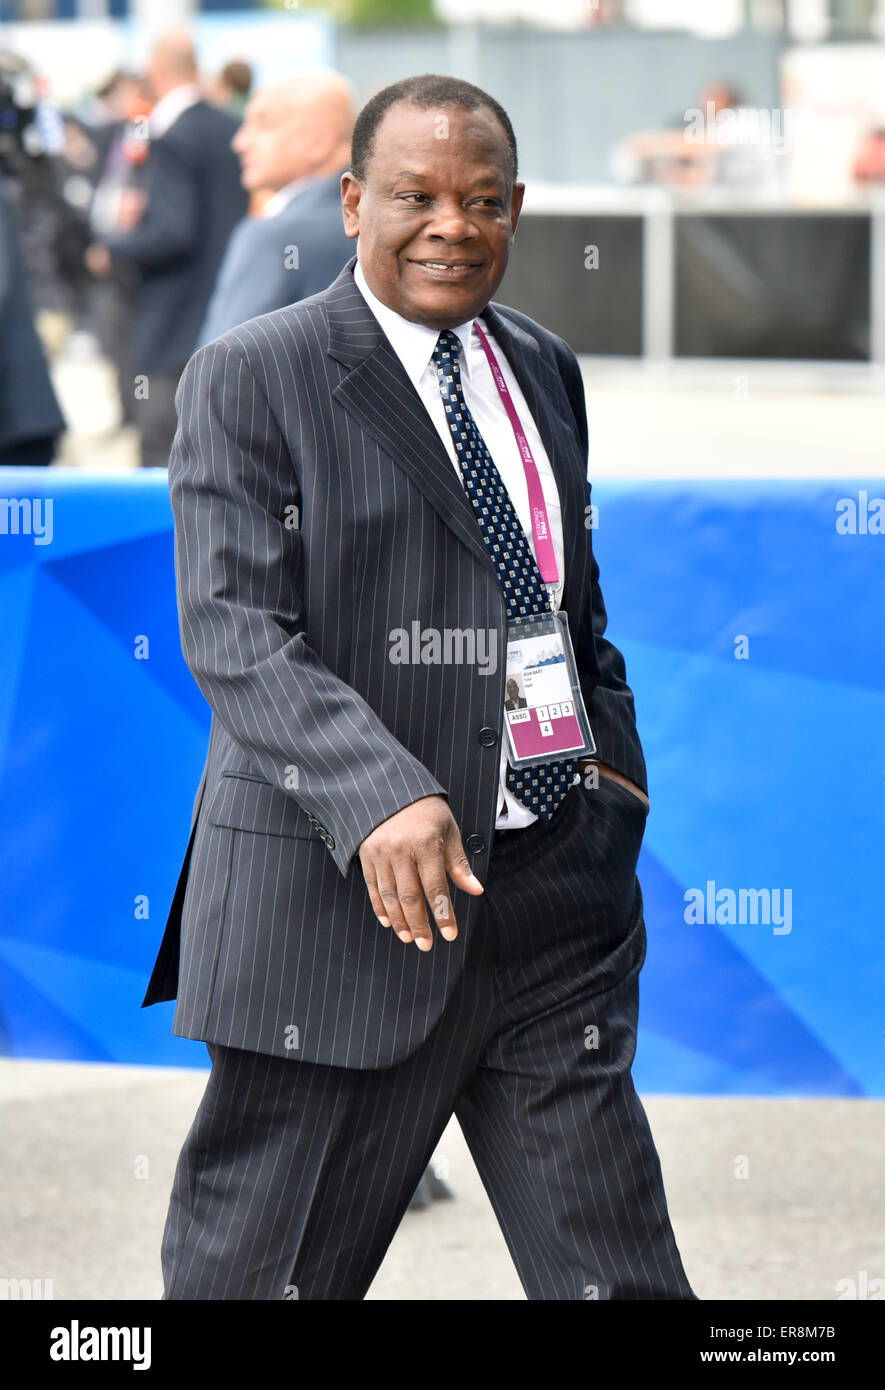 Zurich, Switzerland. 29th May, 2015. FIFA delegate Yves Jean Bart (Haiti) arrives at Zurich Hallenstadion for the - Stock Image